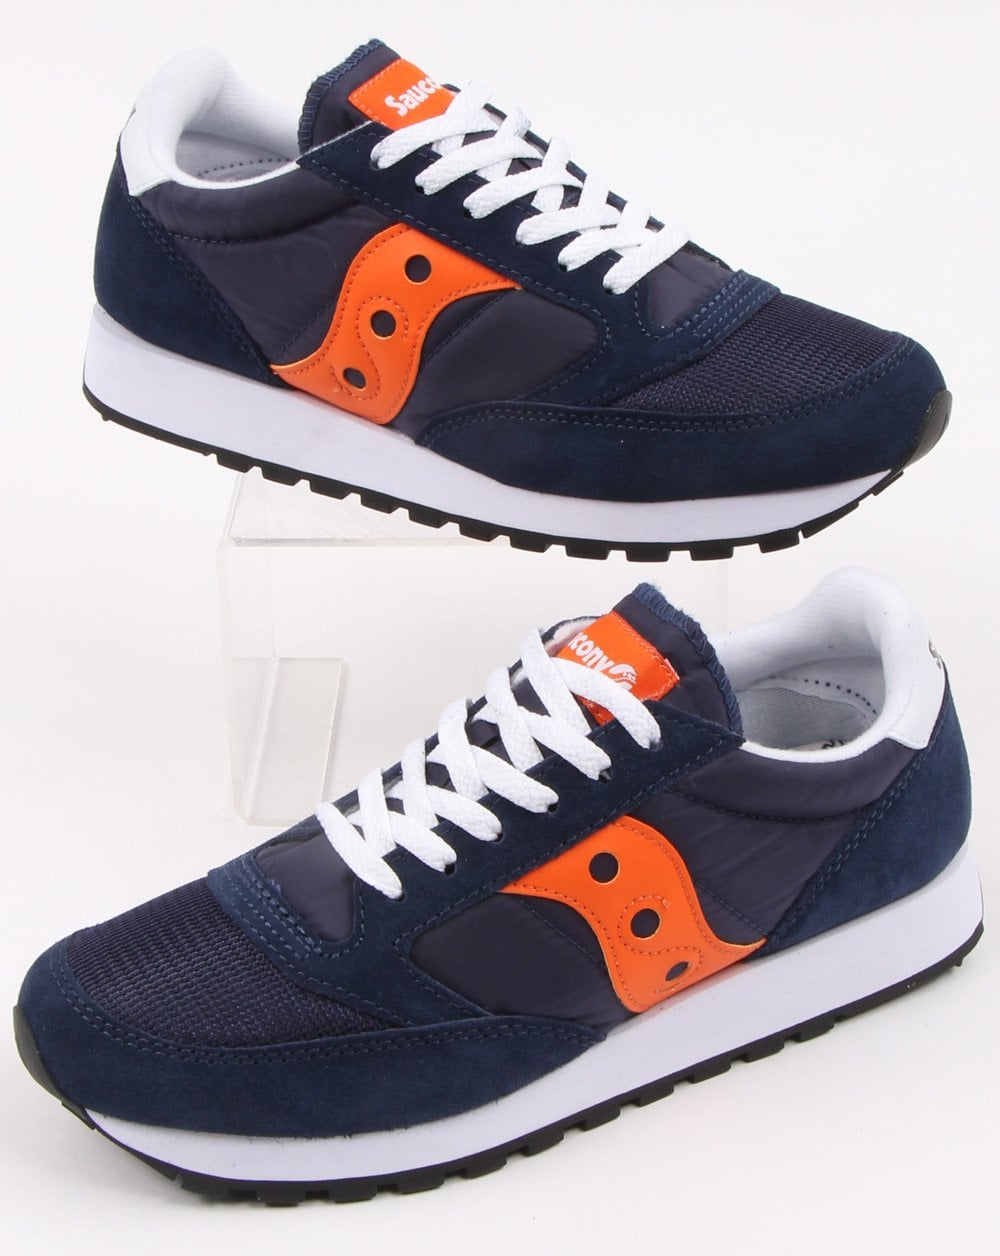 quality design 33ccd ccd02 Saucony Jazz Original Vintage Trainers Navy/Orange